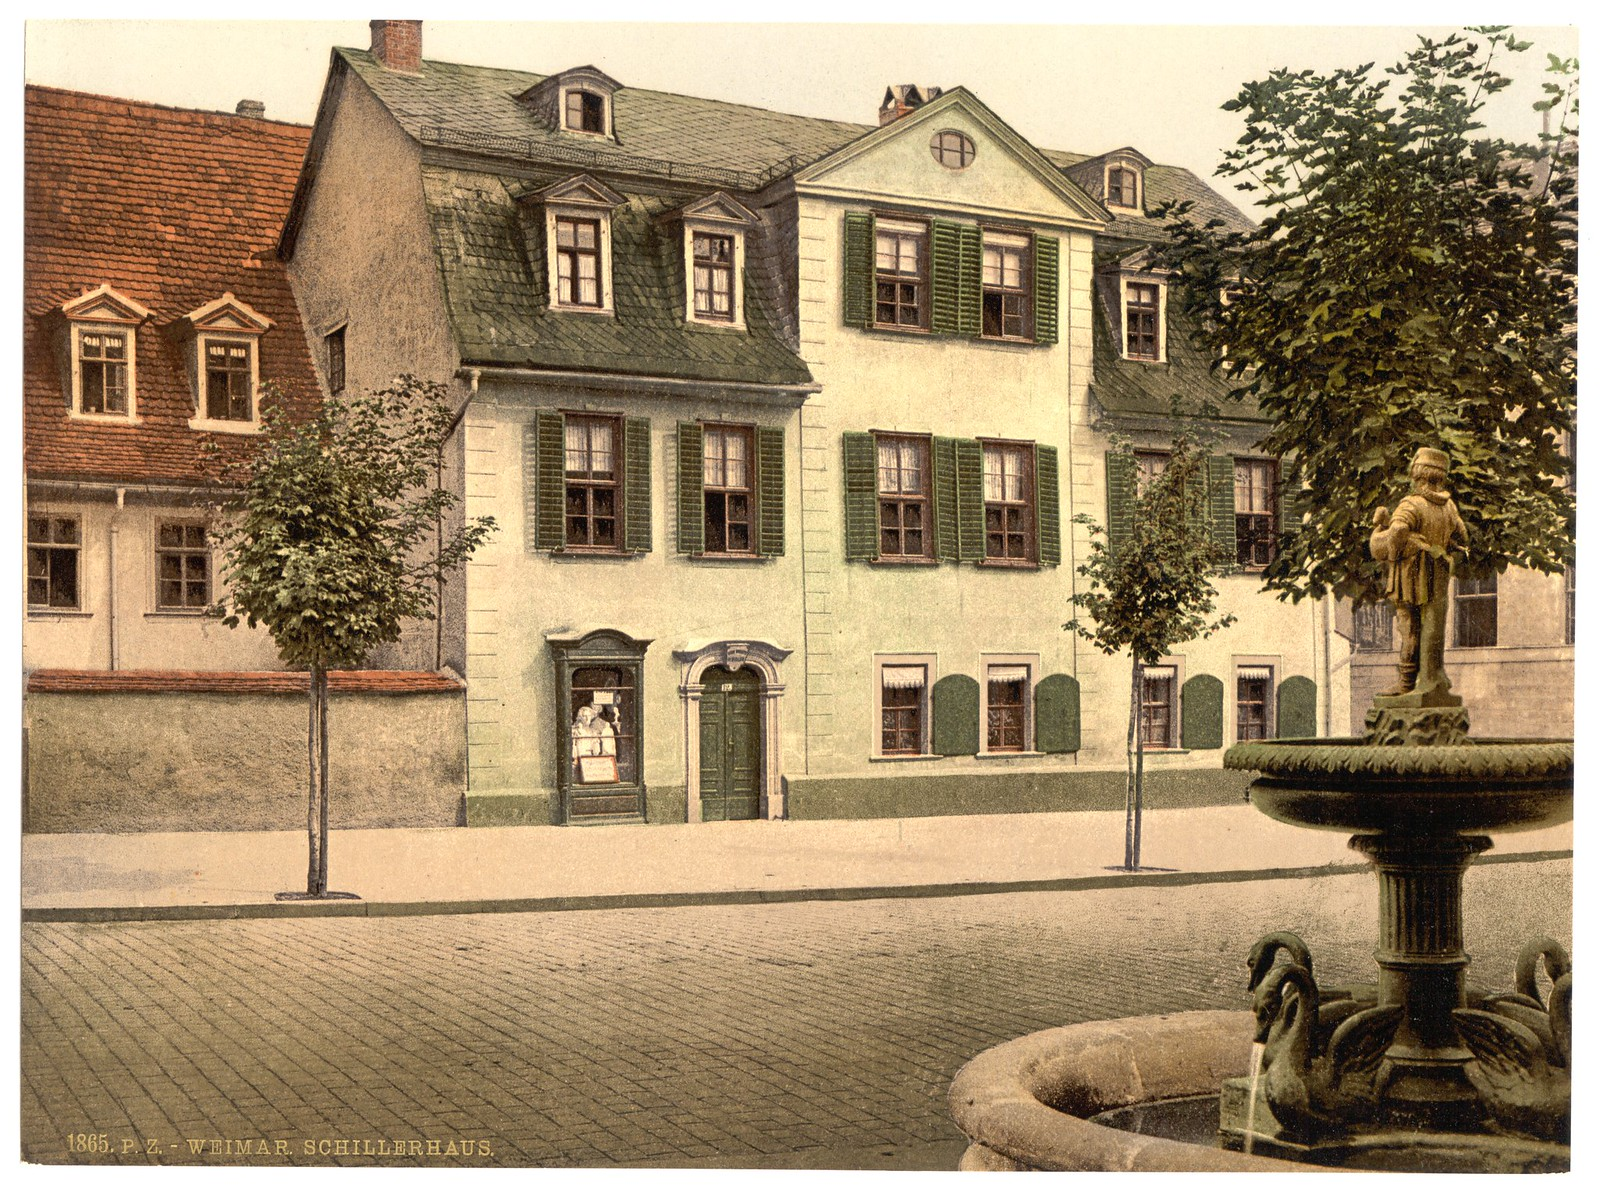 Schiller's House, Weimar, Thuringia, Germany-LCCN2002720788